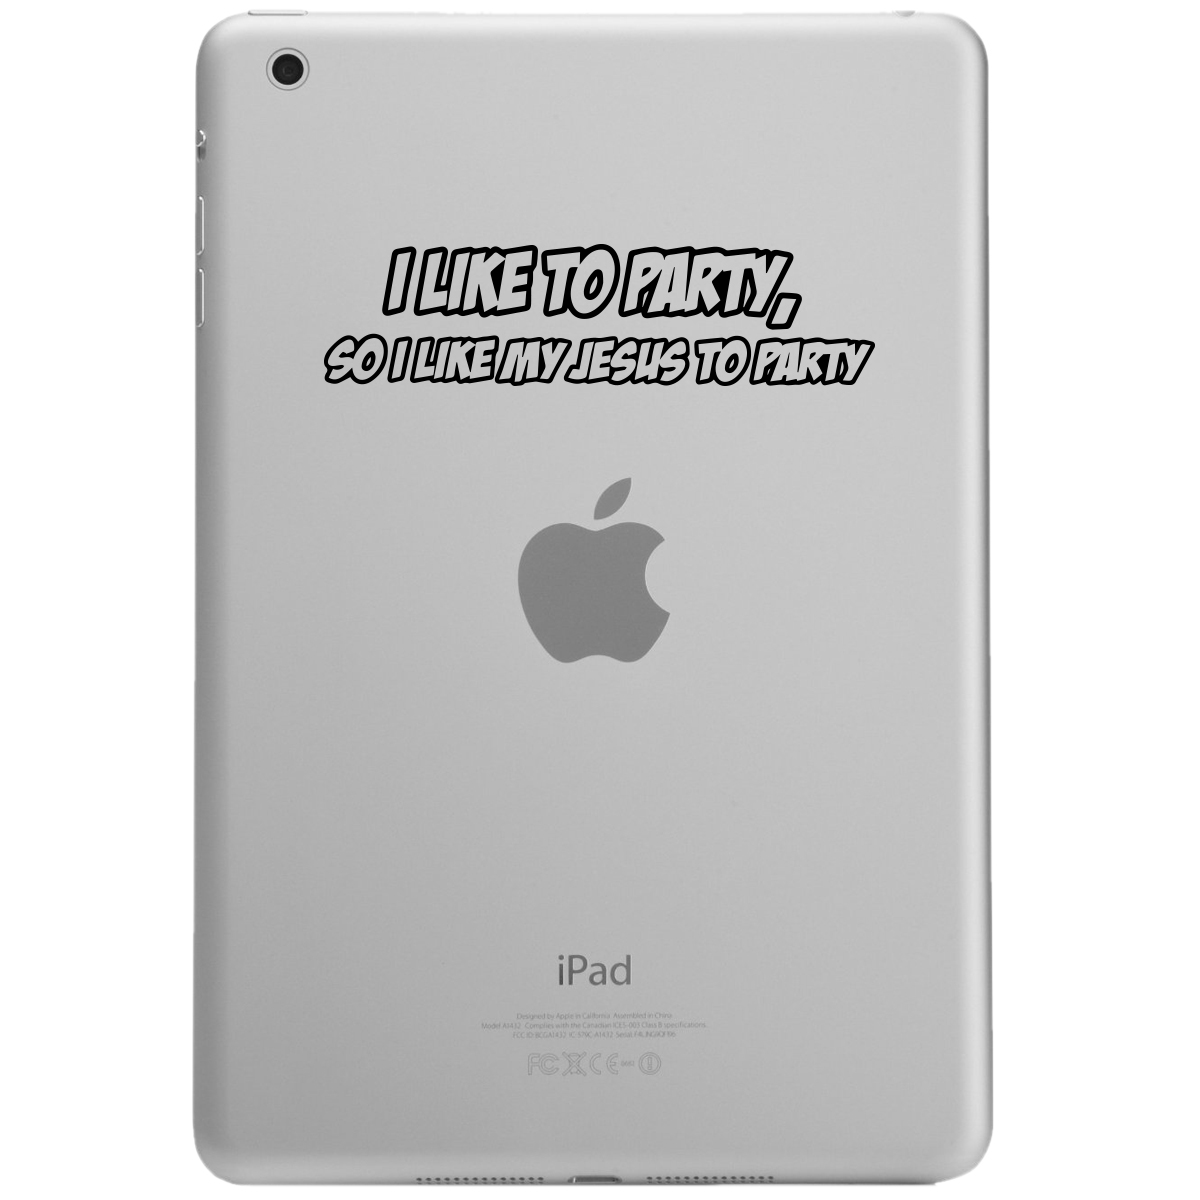 Funny Cal Naughton Jr I Like My Jesus to Party iPad Tablet Vinyl Sticker Decal